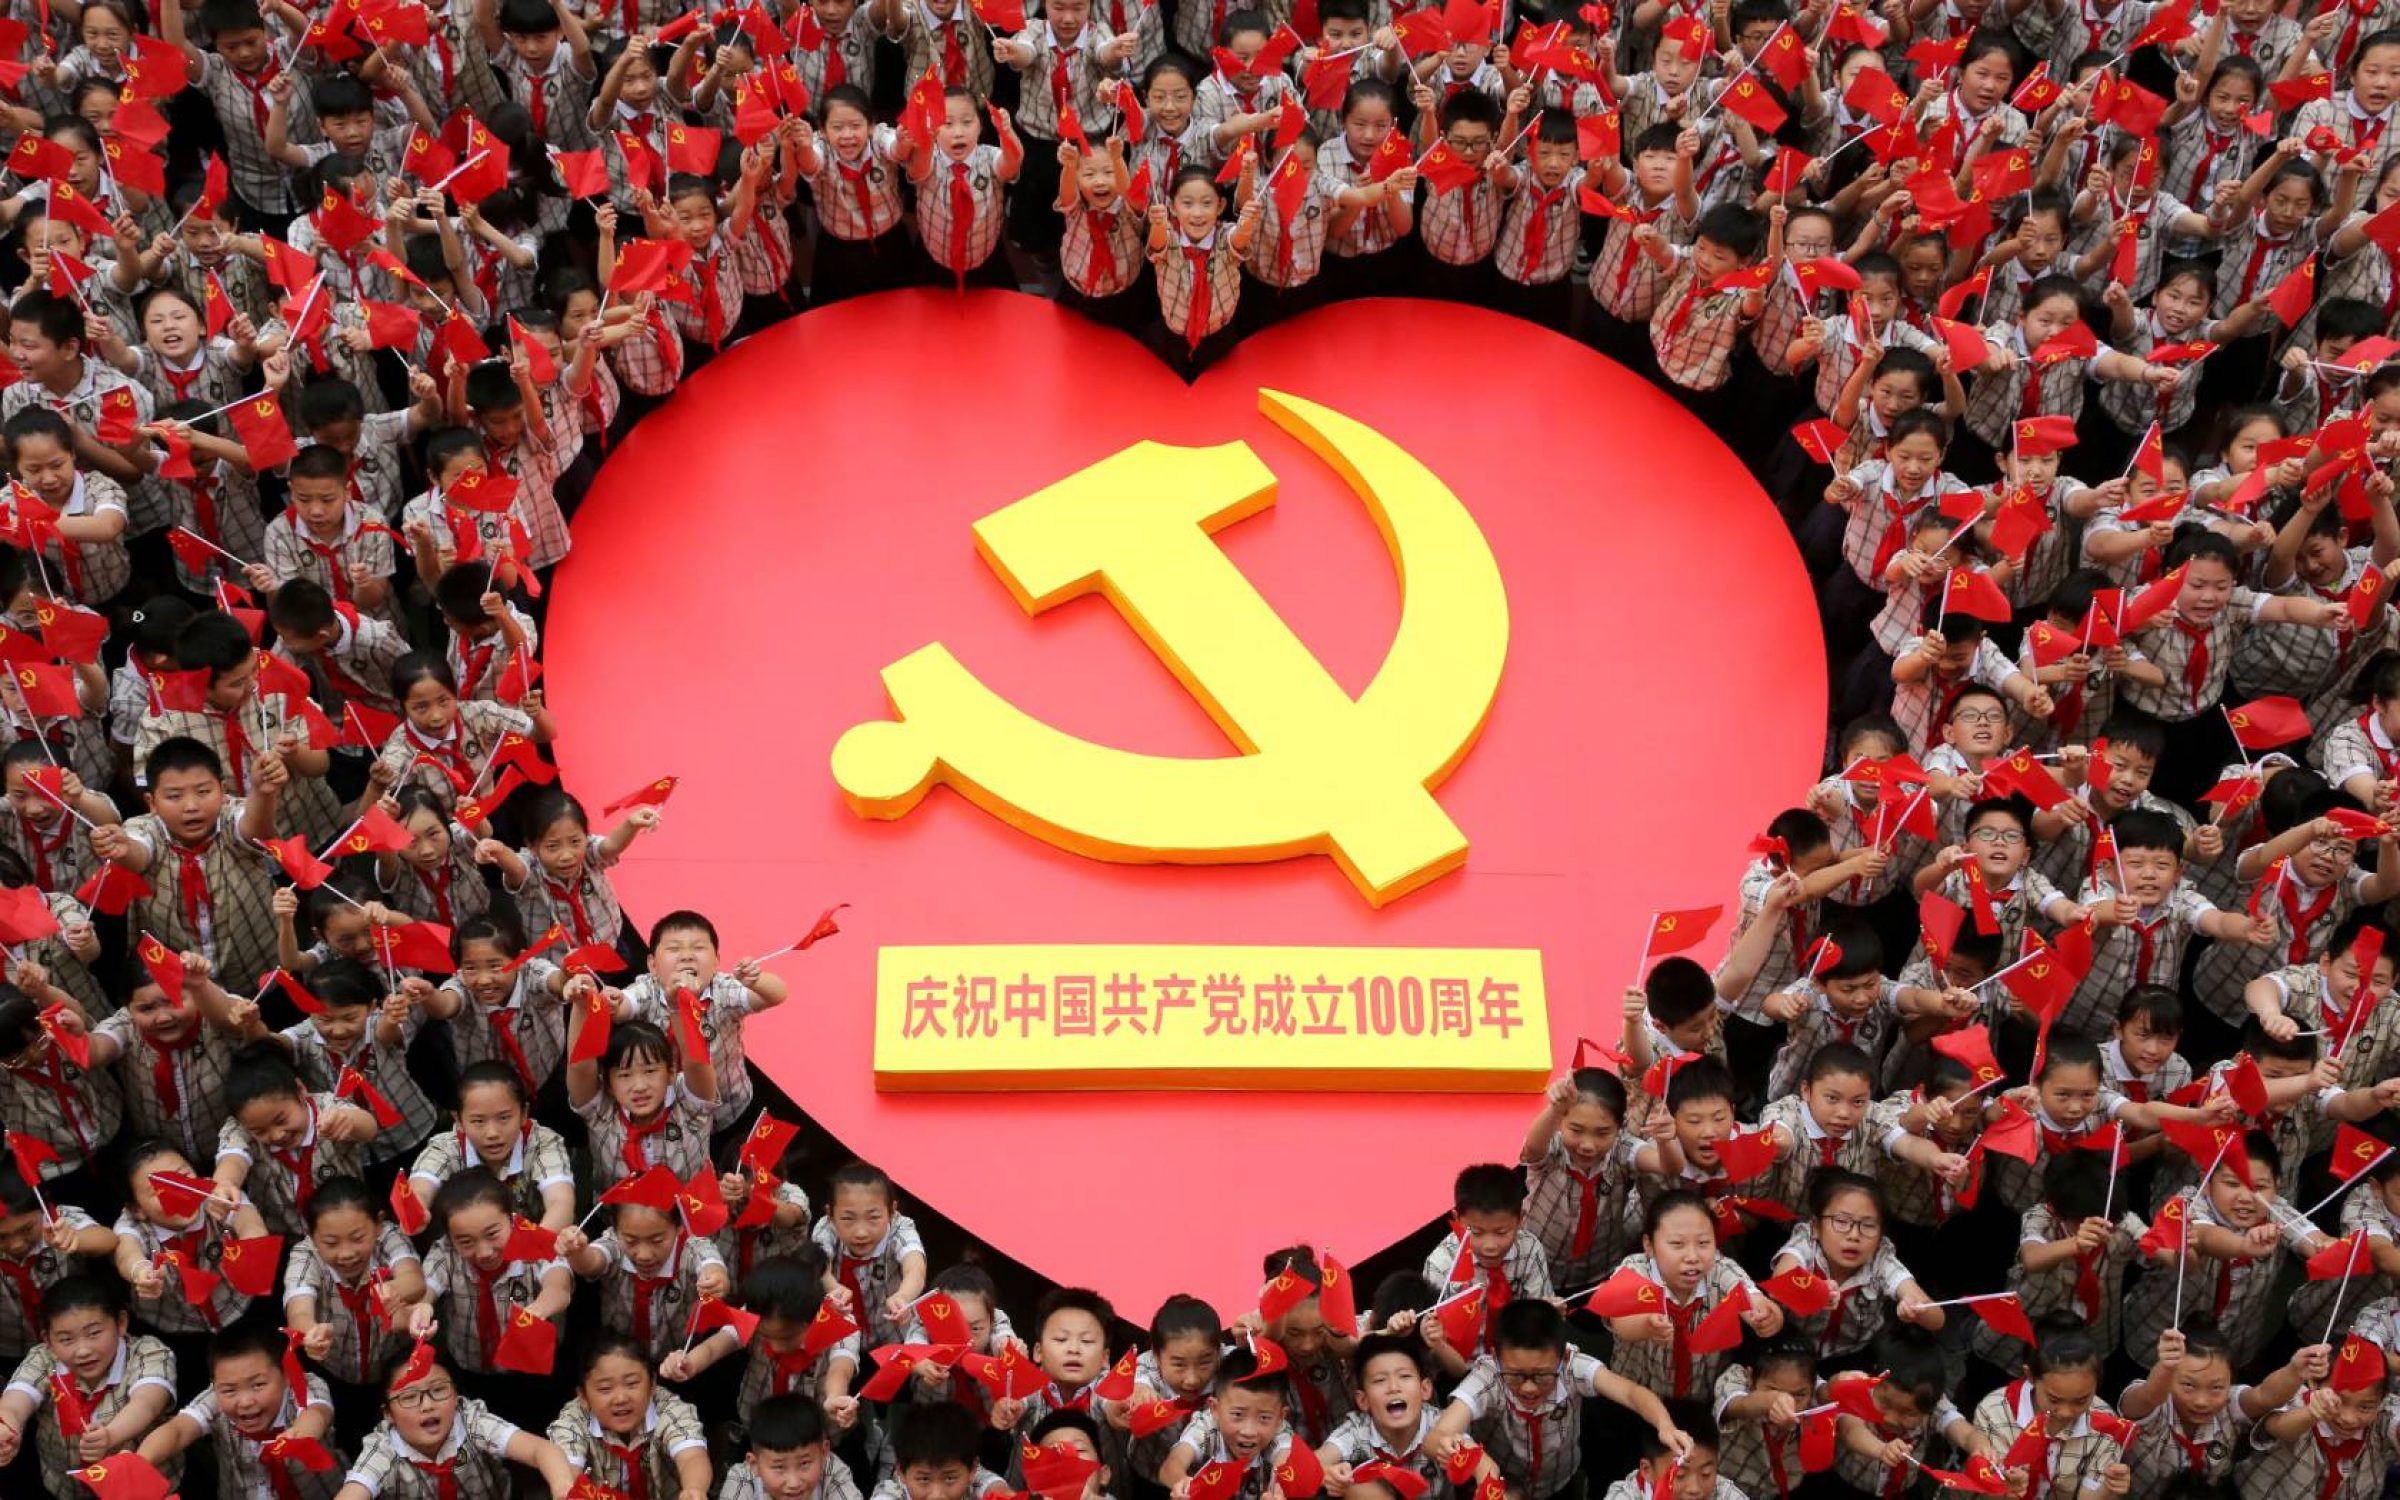 Primary school students sing together to celebrate the hundredth anniversary of the founding of the Communist Party of China